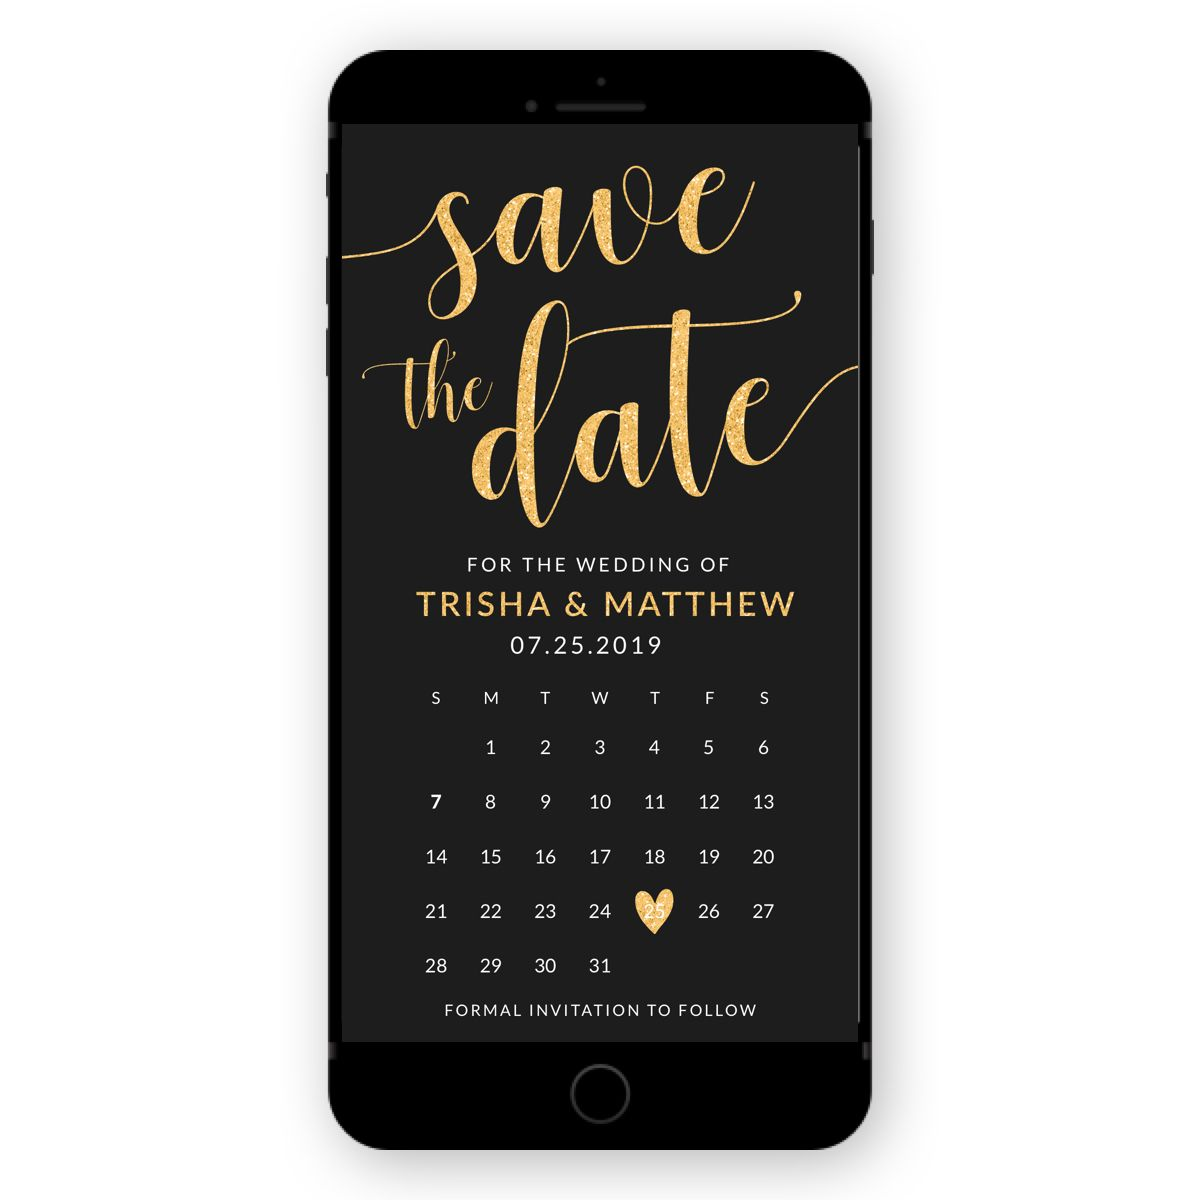 Electronic Save The Date Wedding Invitation Calendar Invite Etsy Electronic Save The Date Wedding Invitation Card Design Wedding Invitations